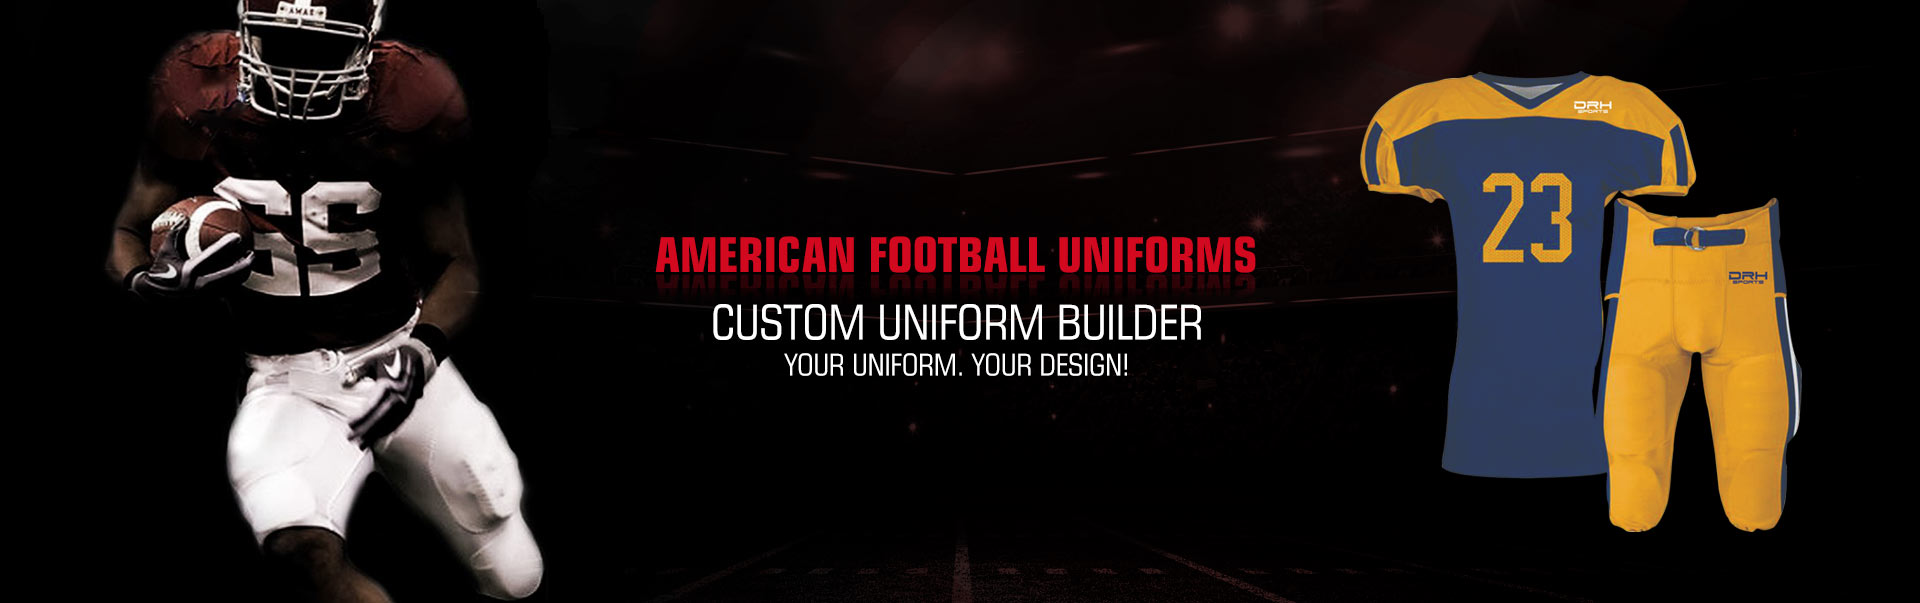 American Football Uniform Wholesaler, Suppliers in Frisco